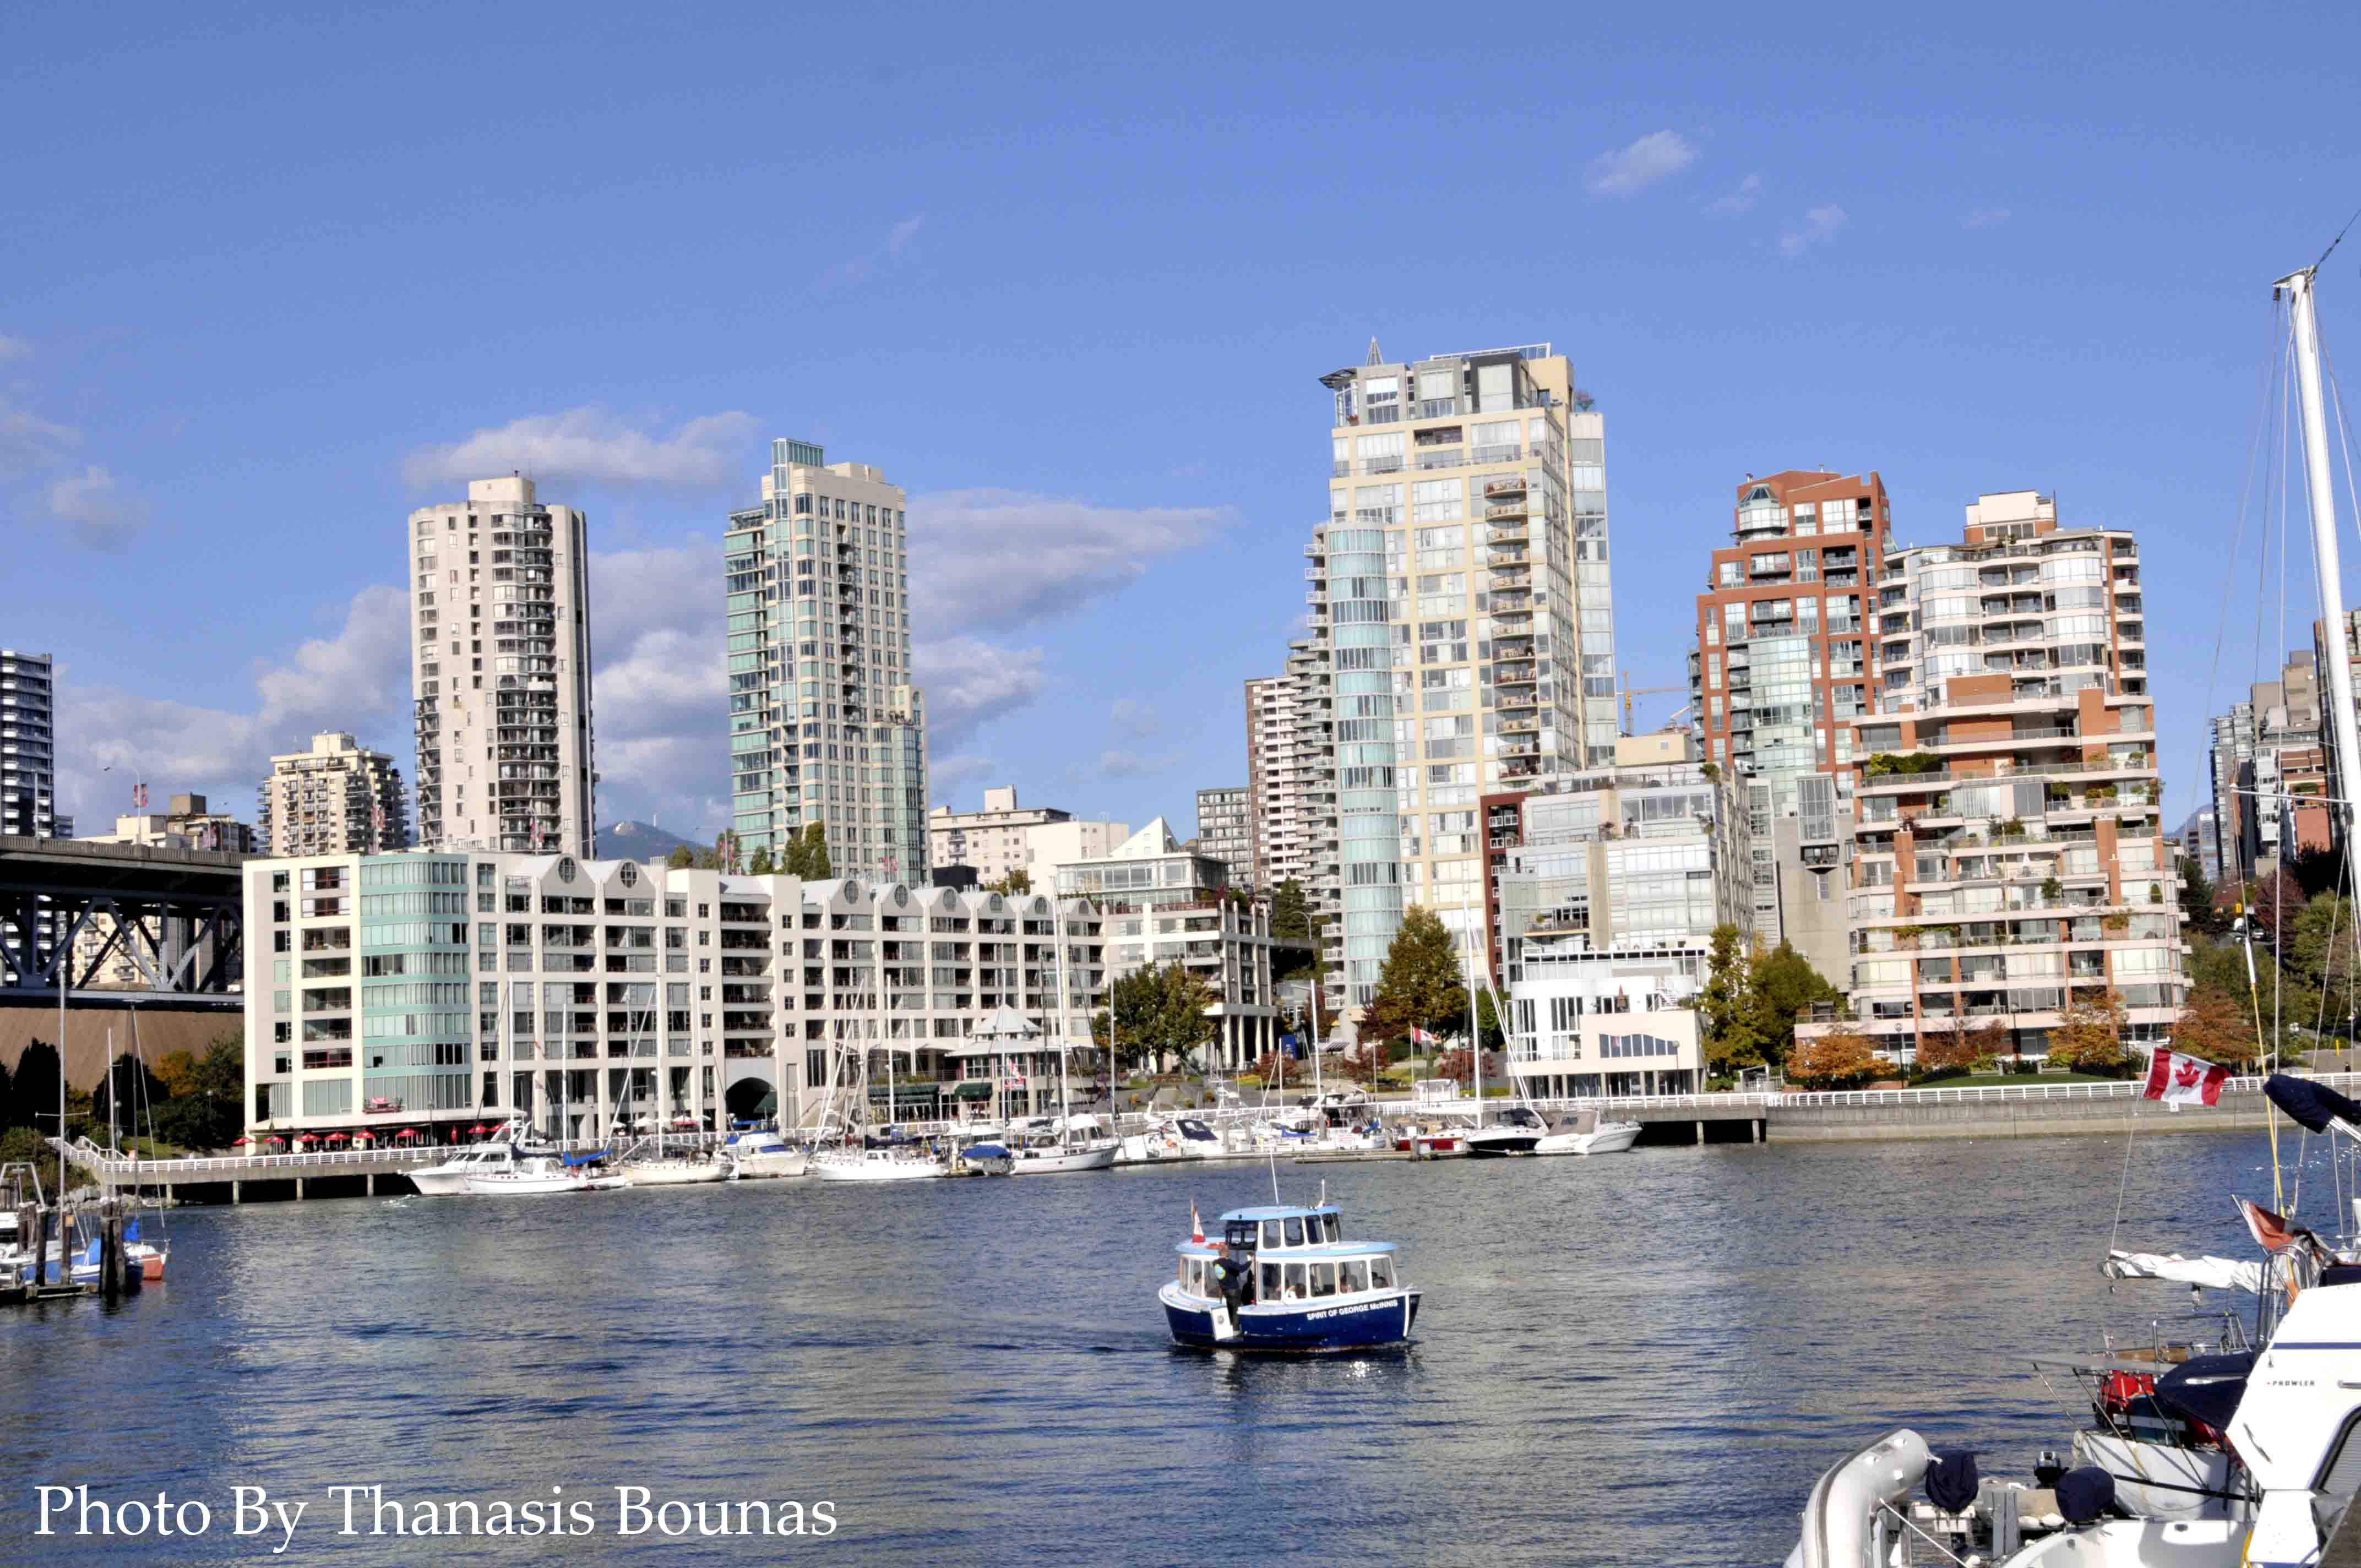 19 Granville Island Beautiful British Columbia Photo By Thanasis Bounas